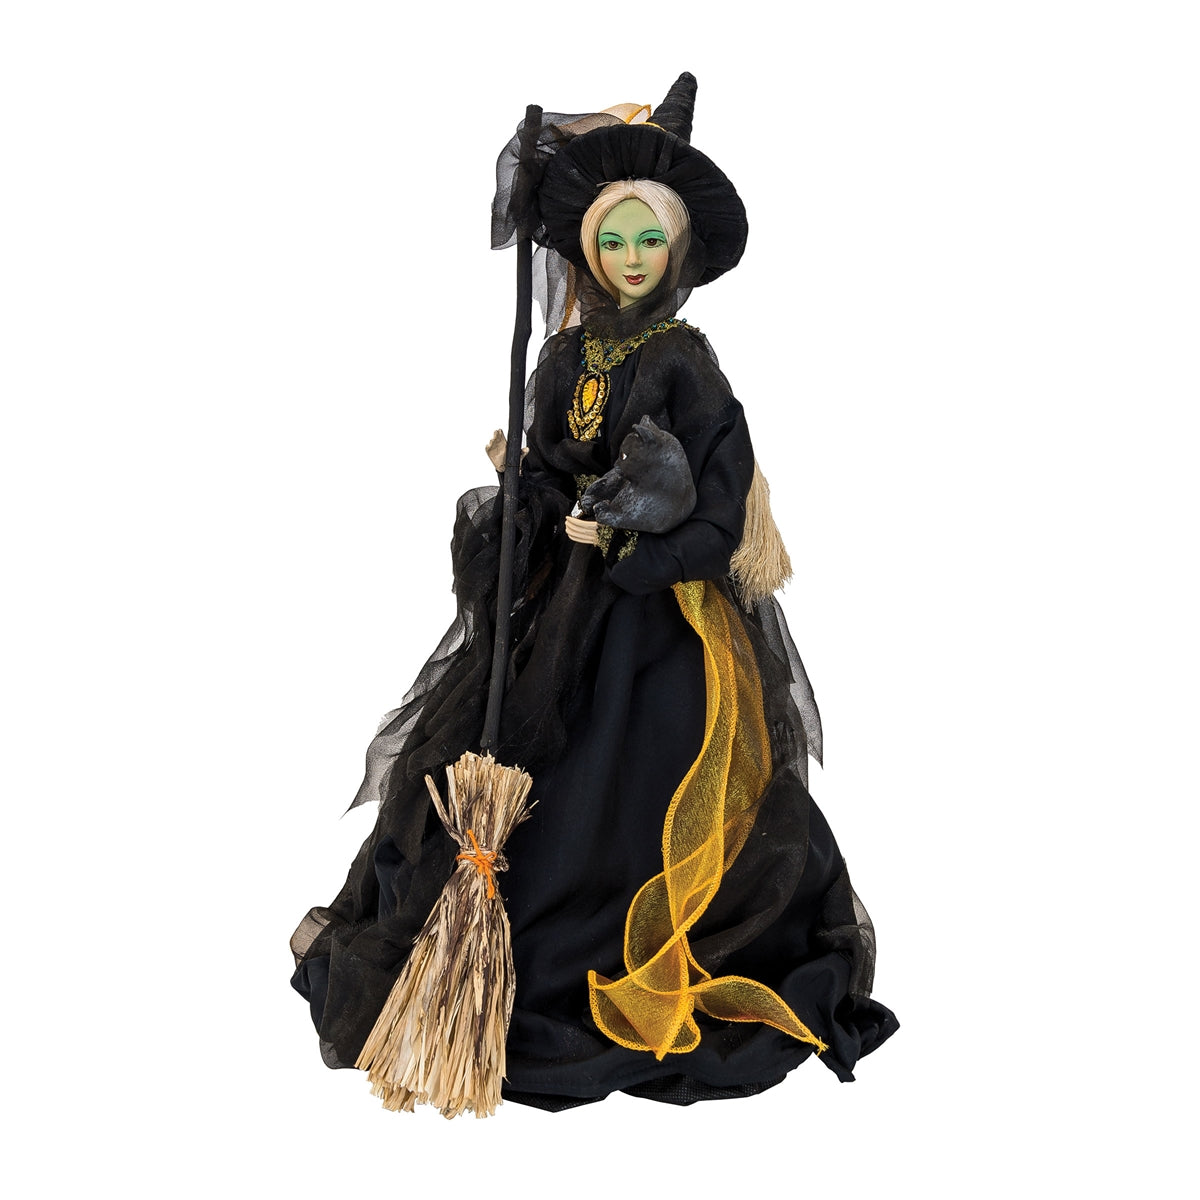 Mary Bradbury Salem Witch Doll Figurine